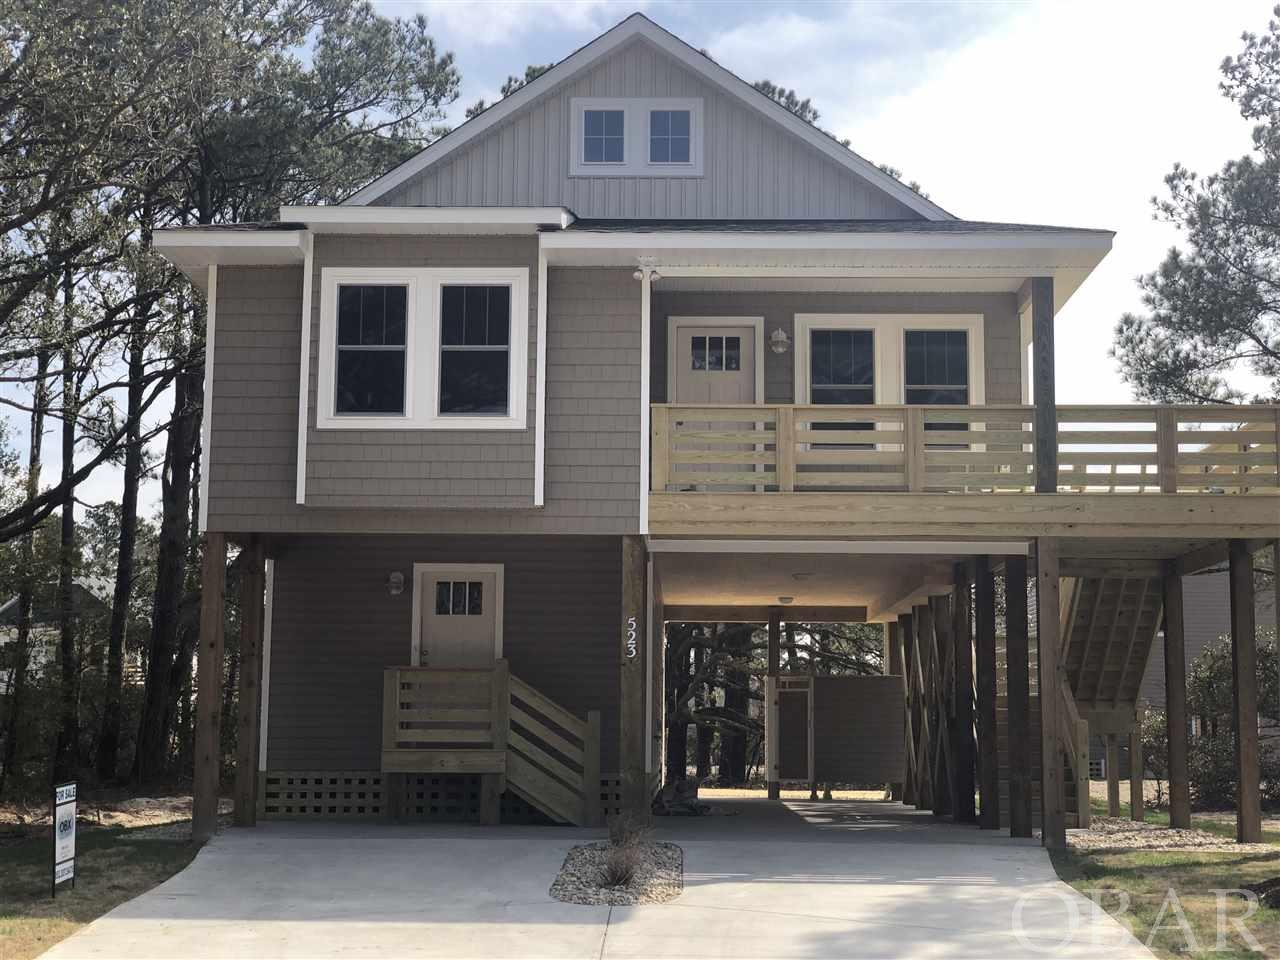 523 Eden Street, Kill Devil Hills, NC 27948, 3 Bedrooms Bedrooms, ,3 BathroomsBathrooms,Residential,For sale,Eden Street,104228